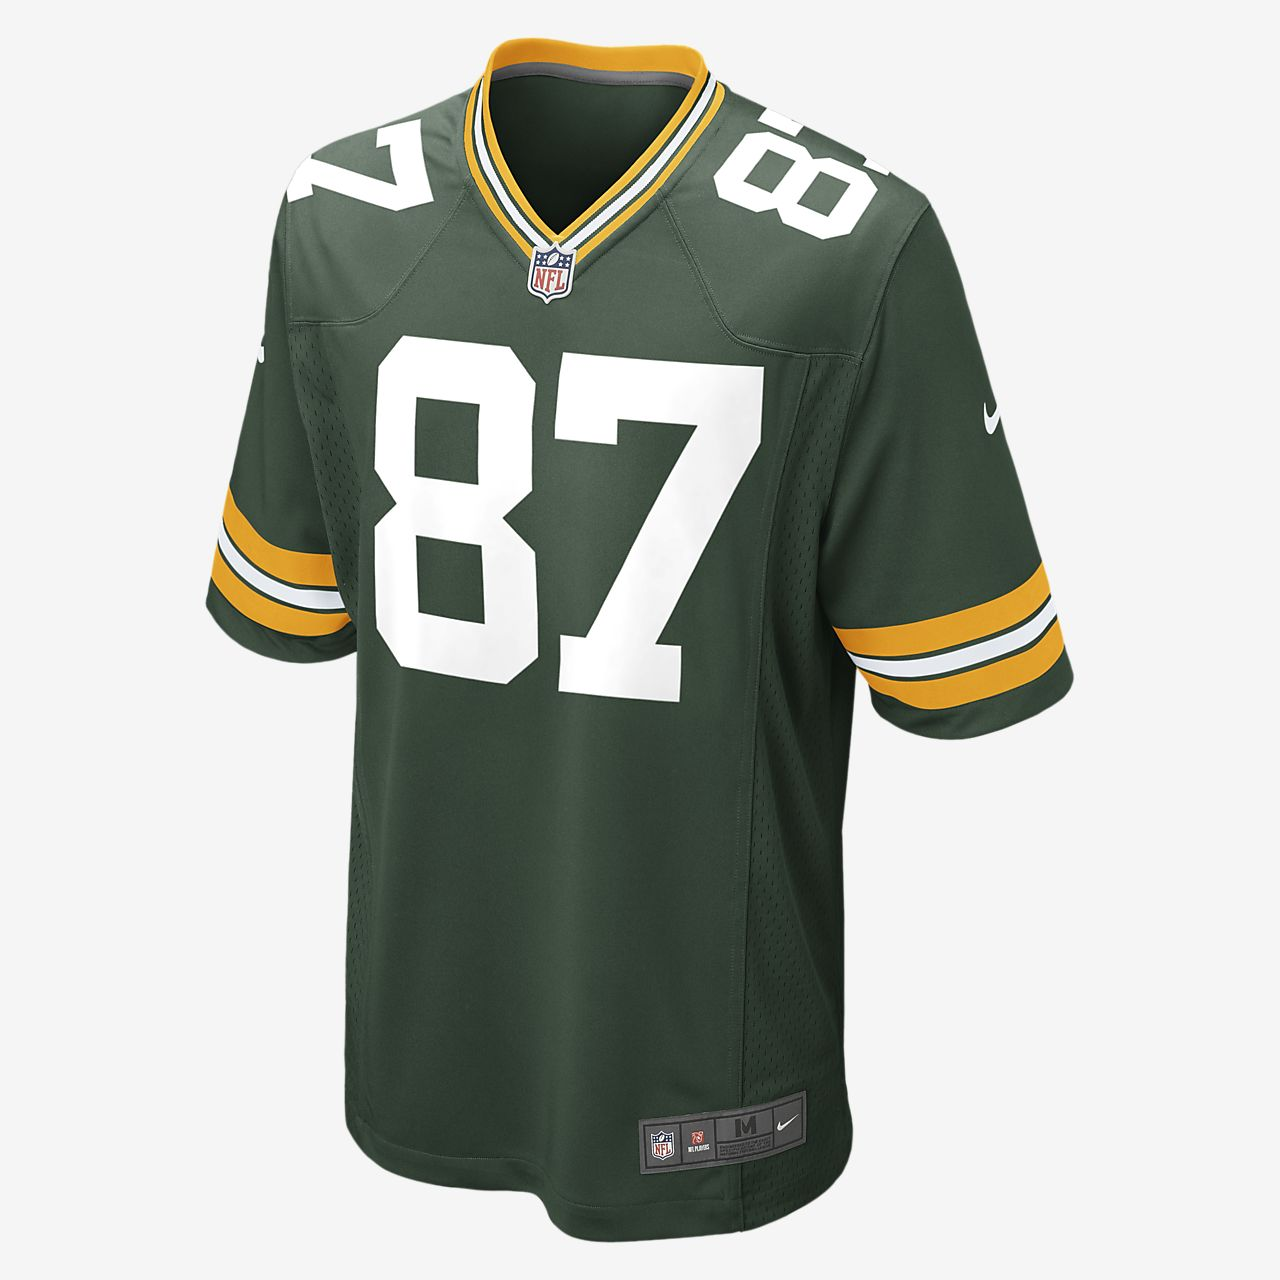 NFL Green Bay Packers (Jordy Nelson) Men's American Football Home Game Jersey